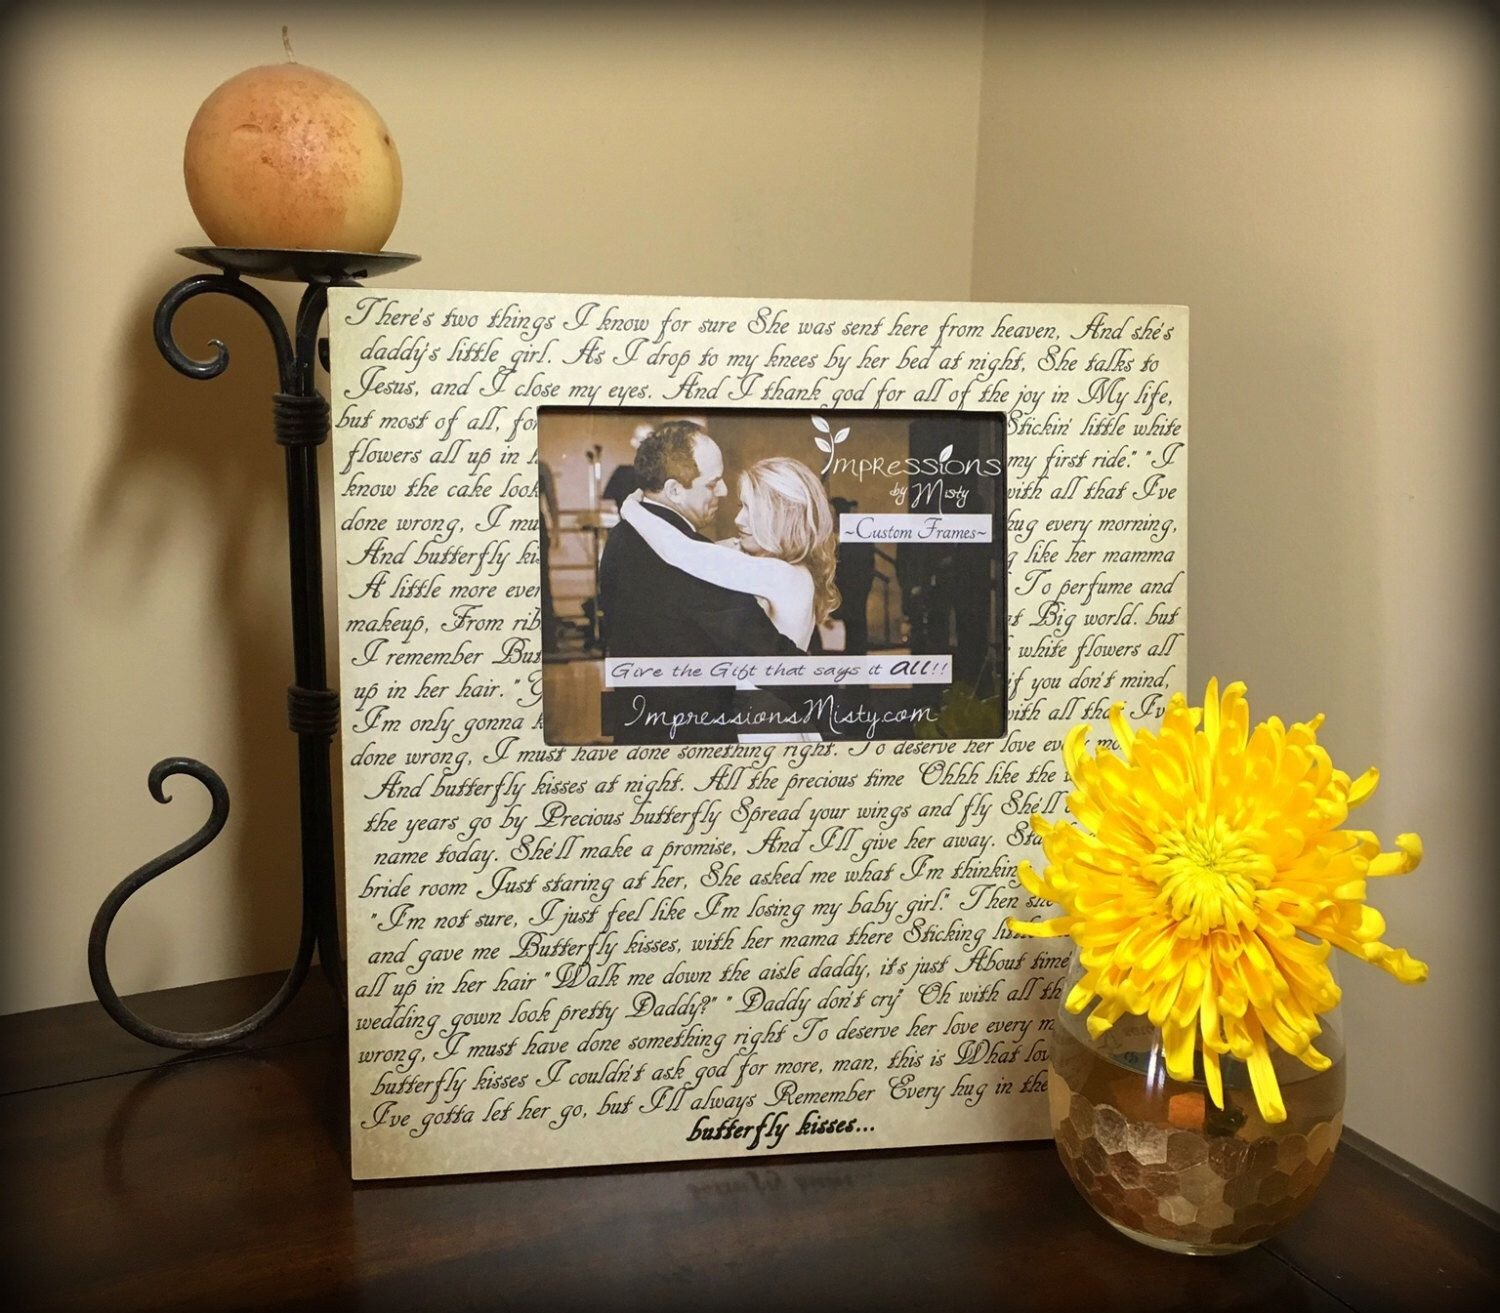 first wedding anniversary gift ideas for husband pinterest%0A Wedding song lyrics gift Anniversary gift for husband First dance with  photo Father u    s day gift Mother u    s day present Personalized gift